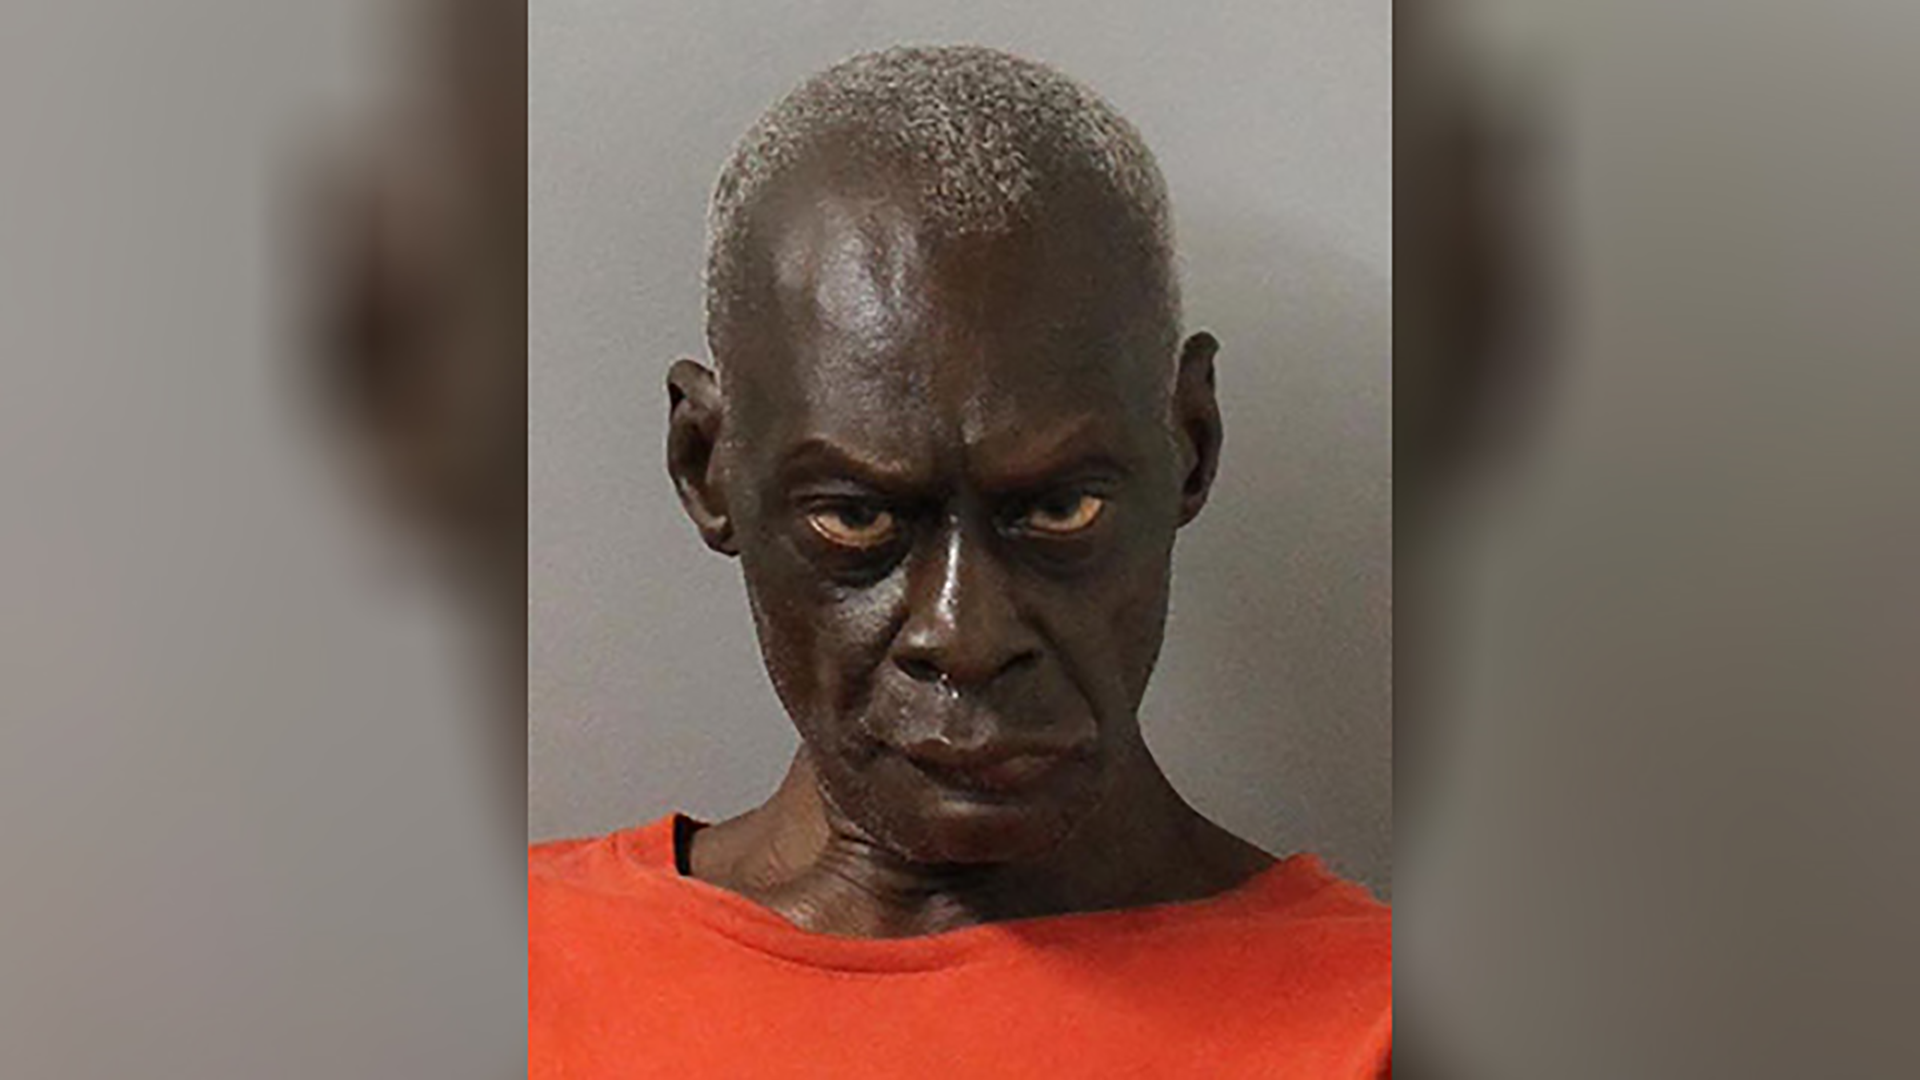 Man comes home to find naked stranger, 67, on his couch